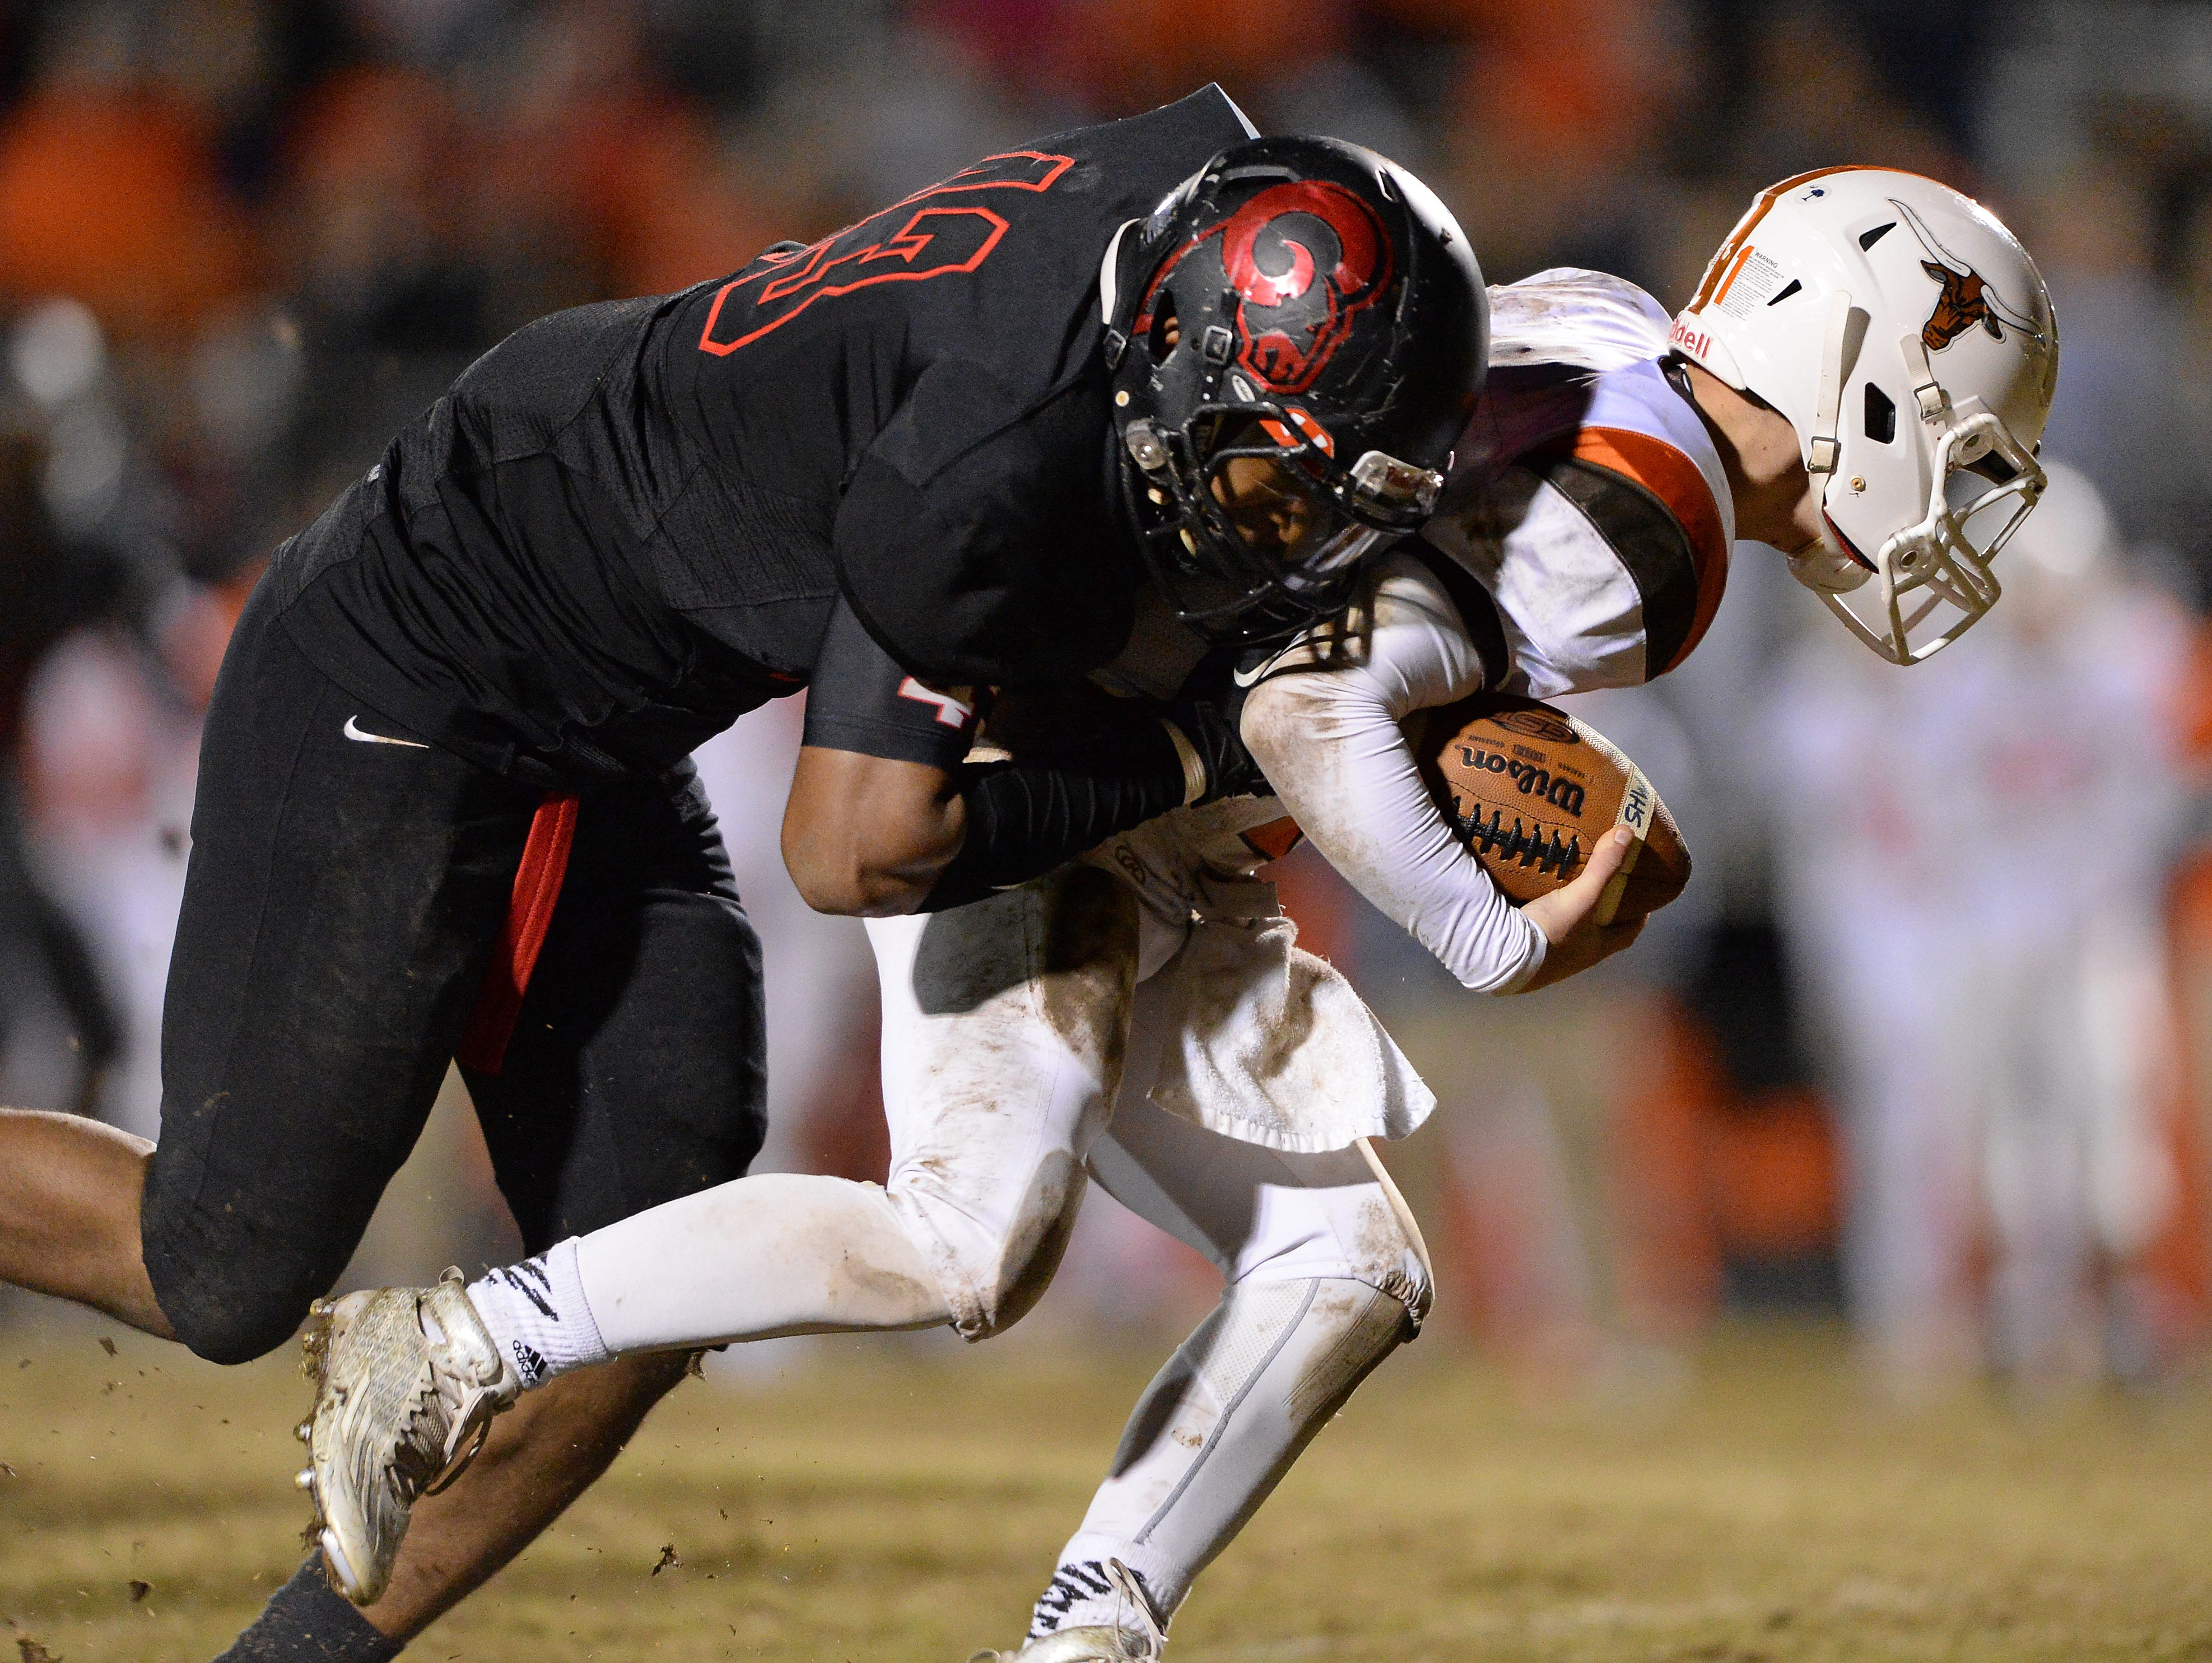 Hillcrest's Brandon Peppers (13) sacks Mauldin quarterback Mitch Norman (11) during the first round of the Class AAAA Division-I playoffs Friday, November 20, 2015 at Hillcrest High.